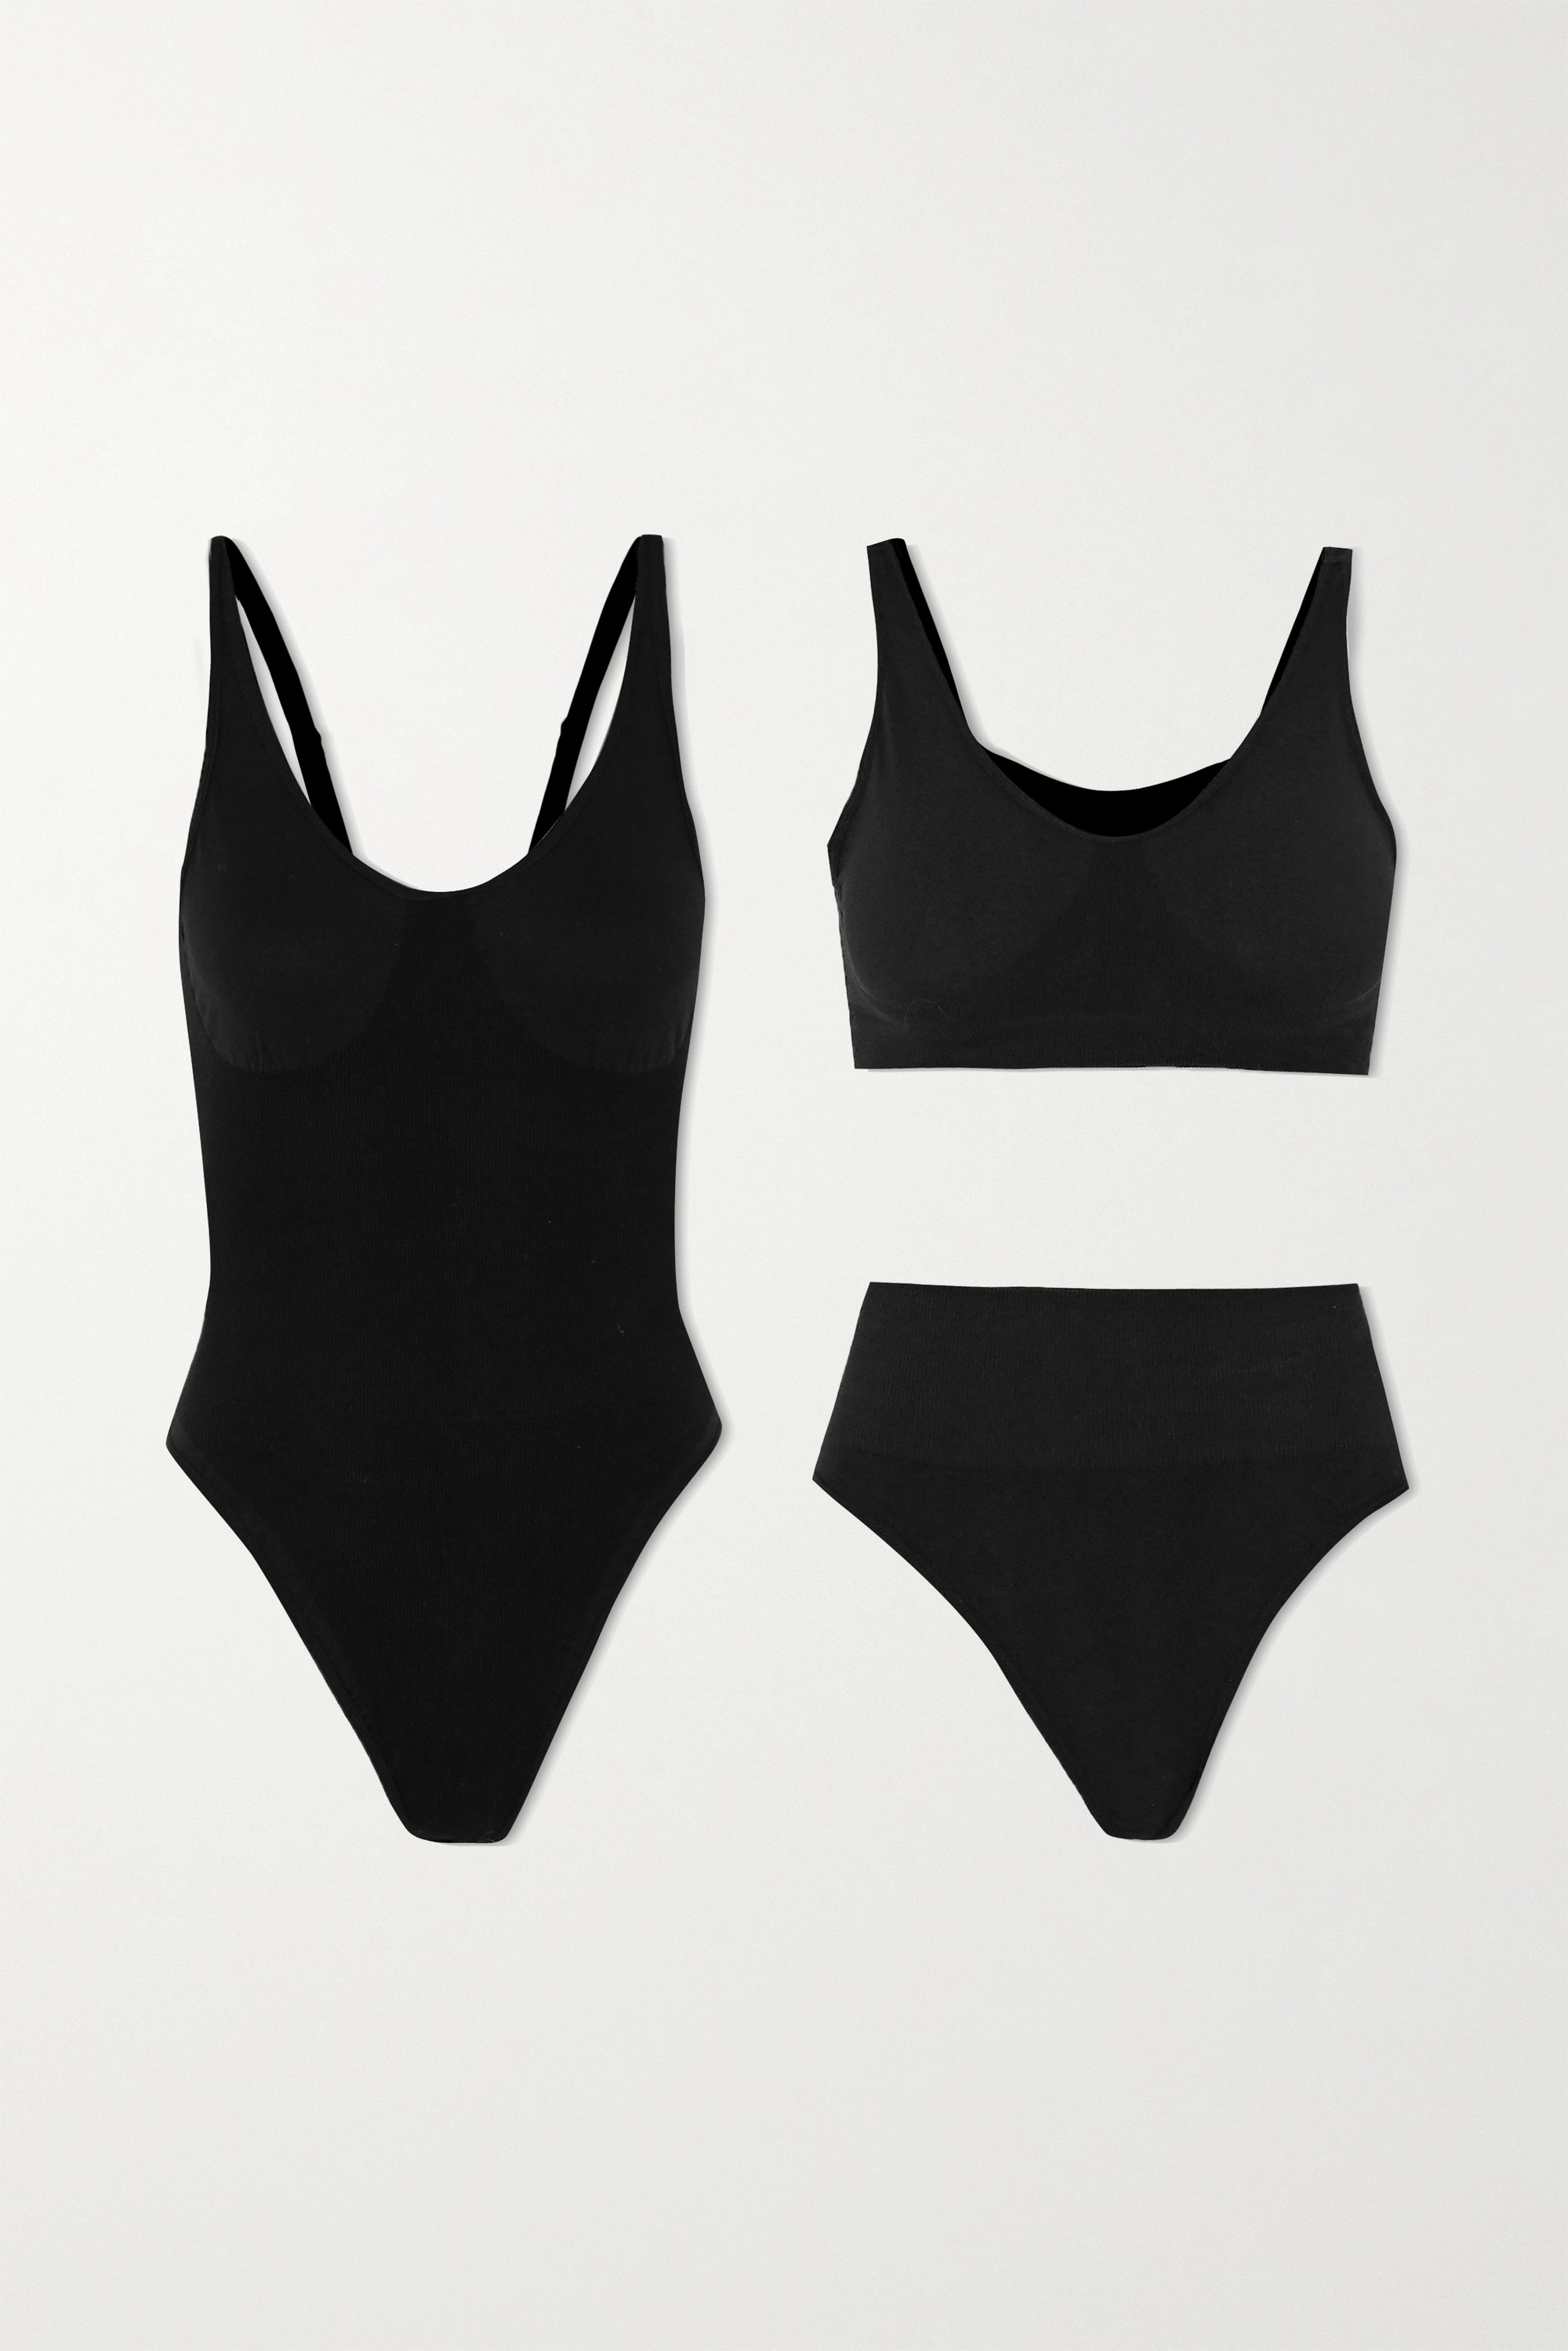 Skin The Solutions Kit ribbed organic cotton-blend bodysuit, bra and thong set